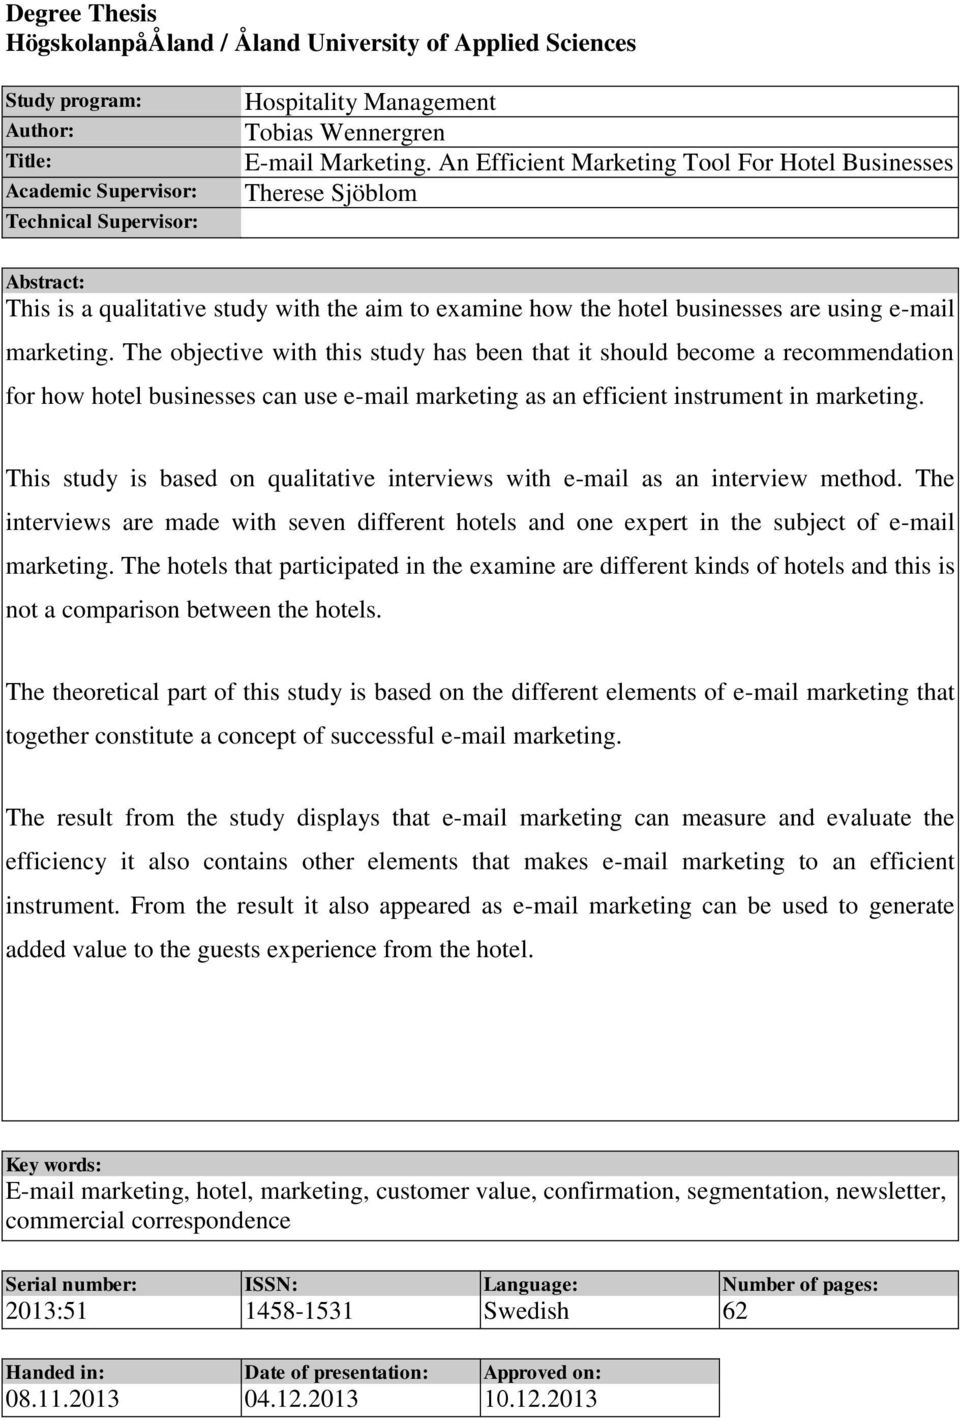 The objective with this study has been that it should become a recommendation for how hotel businesses can use e-mail marketing as an efficient instrument in marketing.